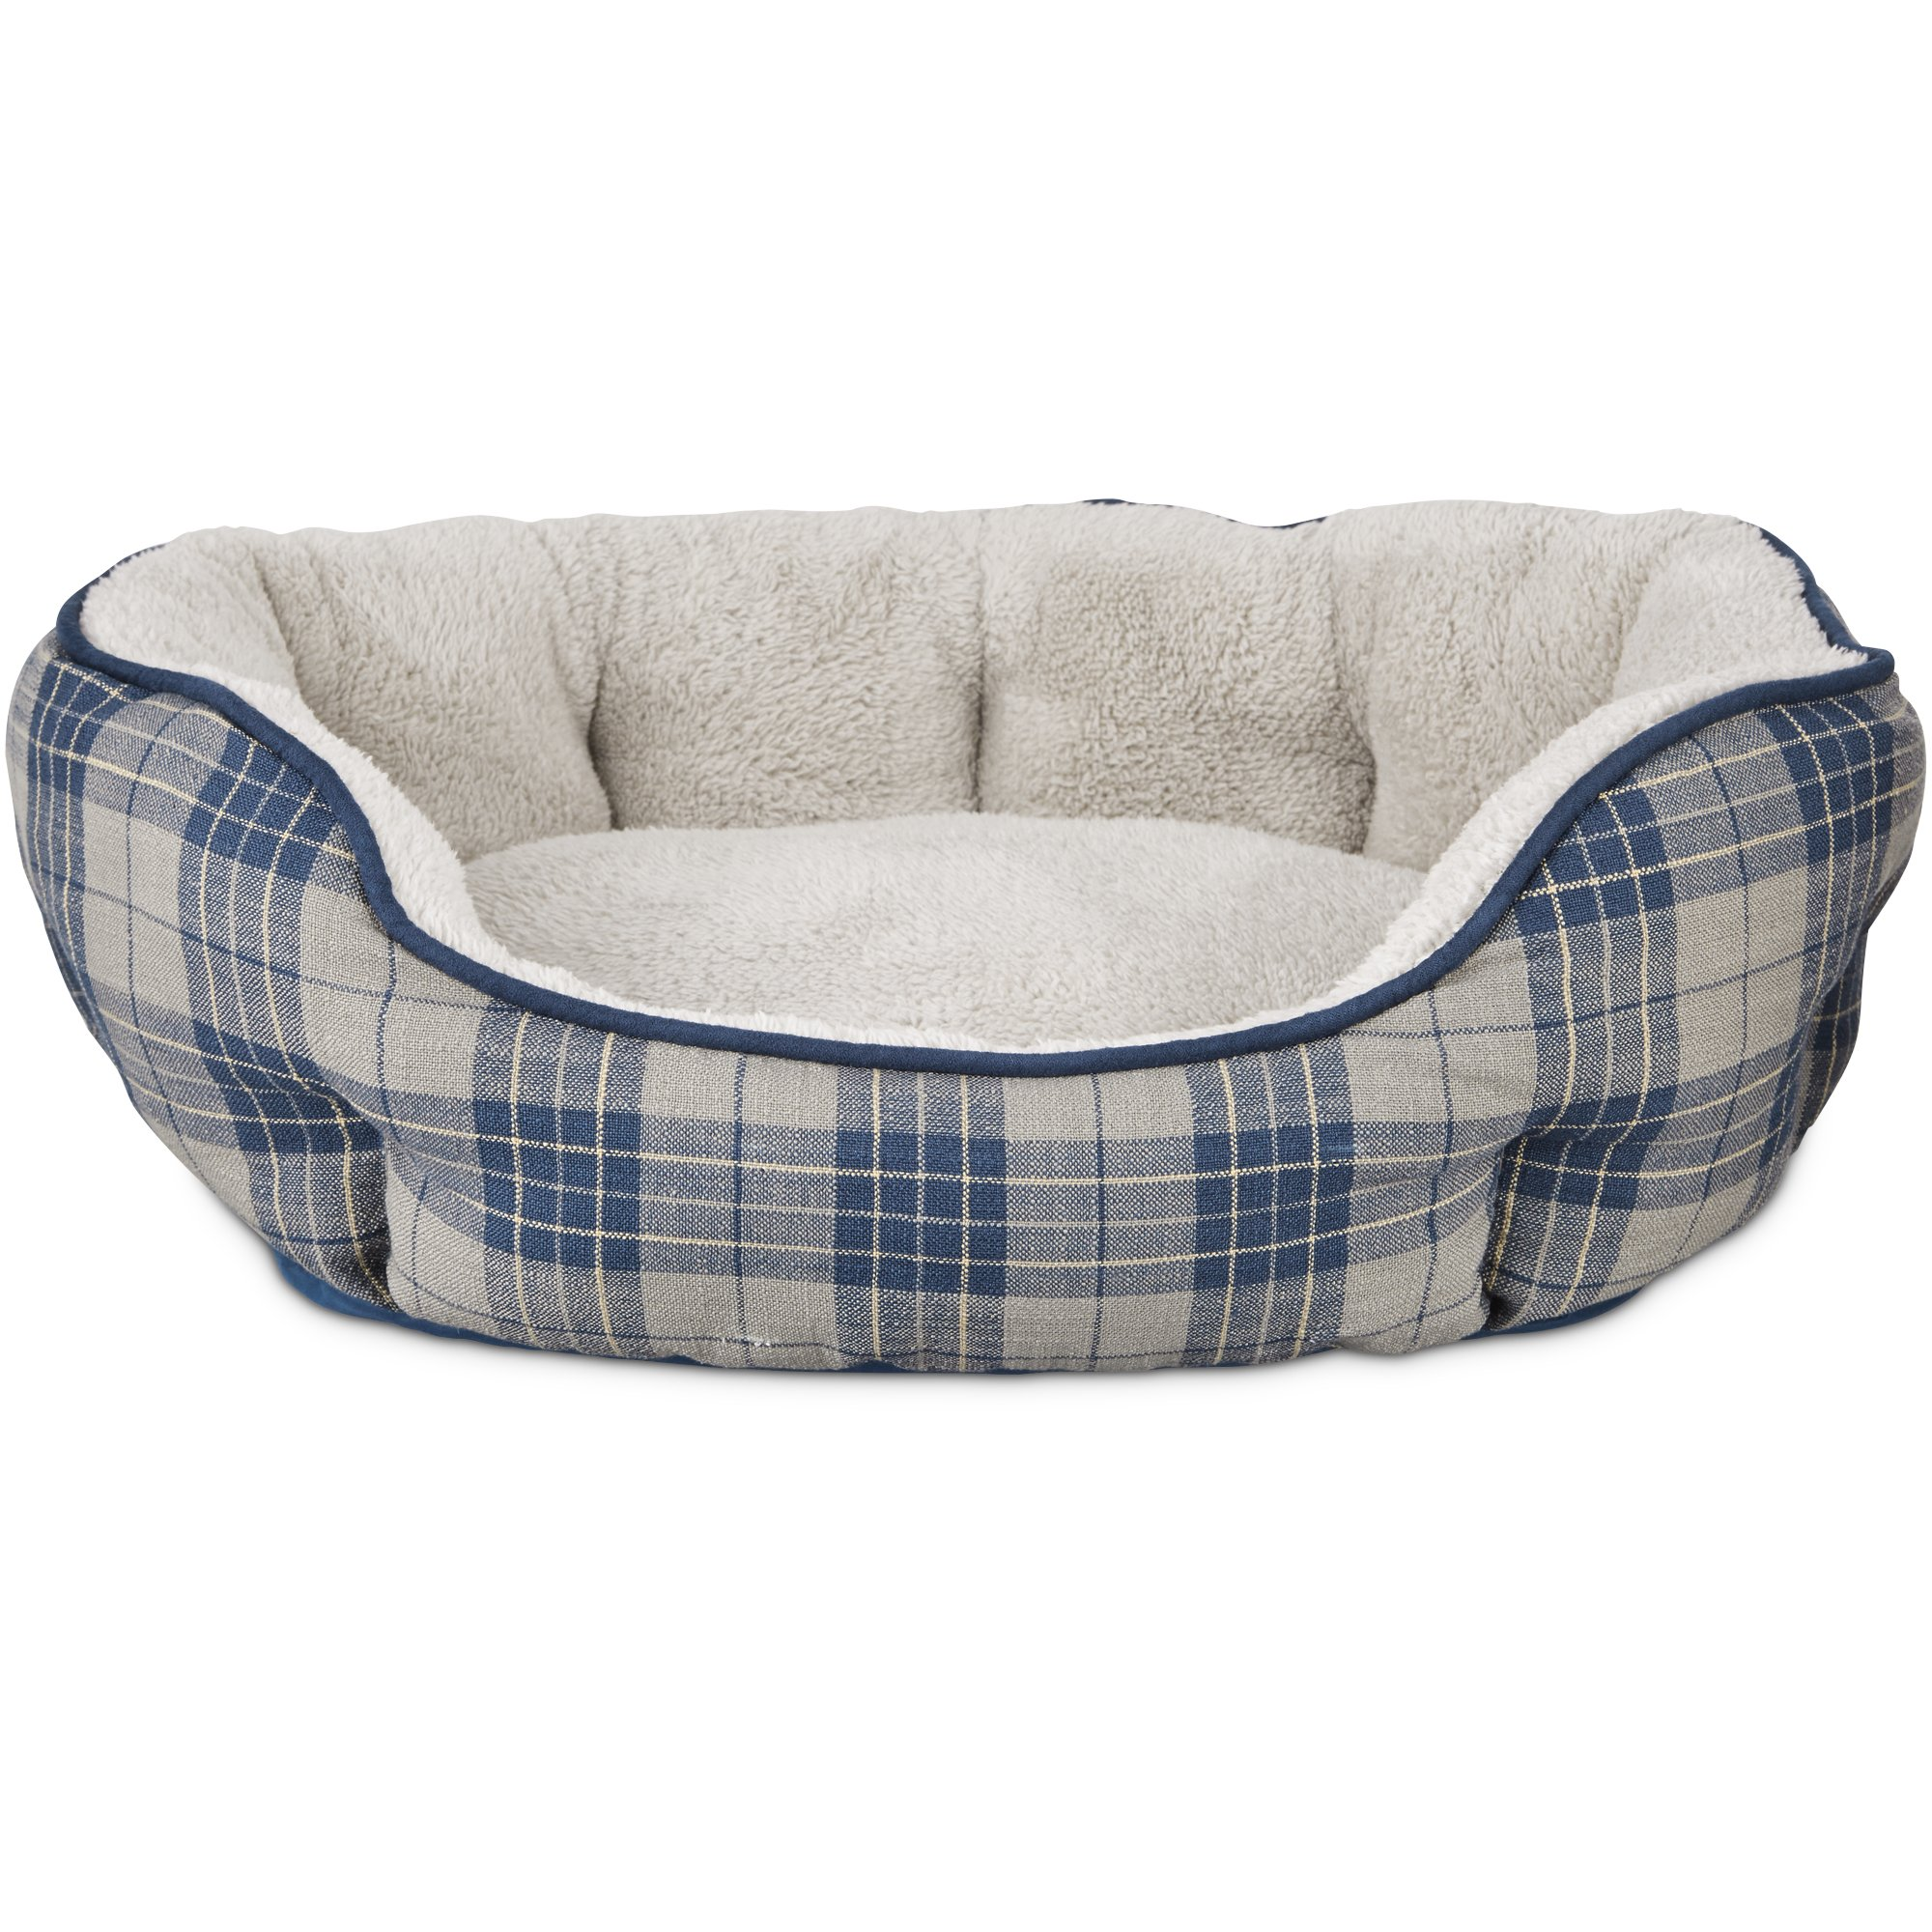 bed and buff center doctors en jacquart shop dog petcostore beds cuddly smith ball foster warm petco personalized deluxe slumber product